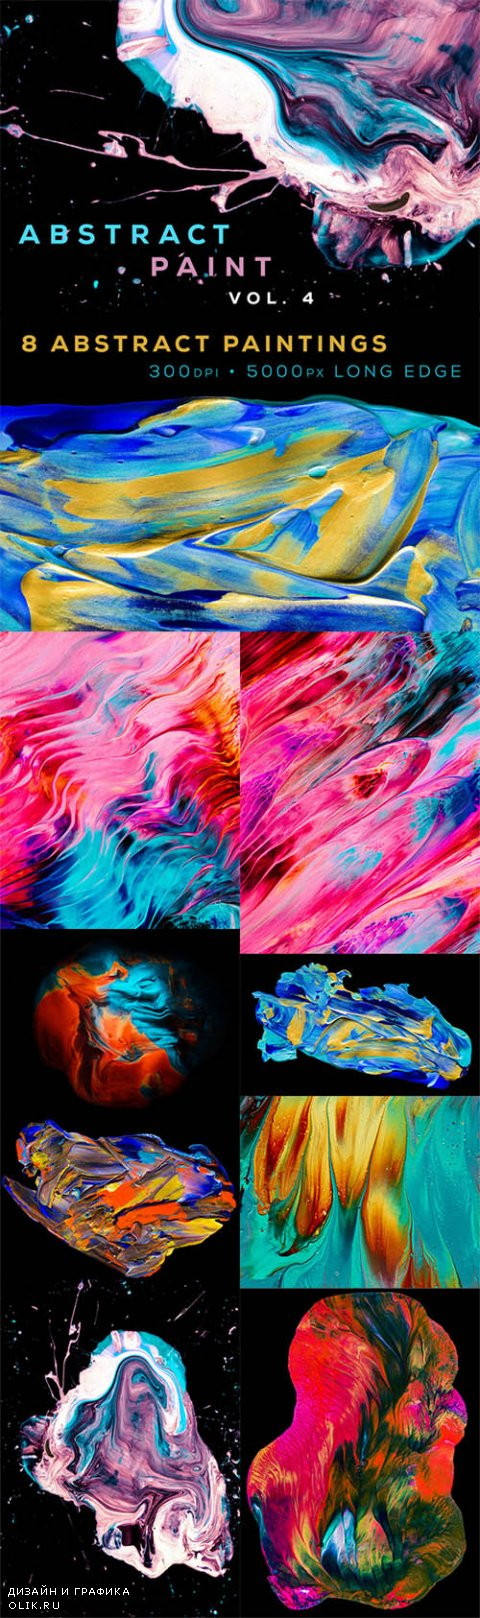 Abstract Paint, Vol 4 - Creativemarket 532984